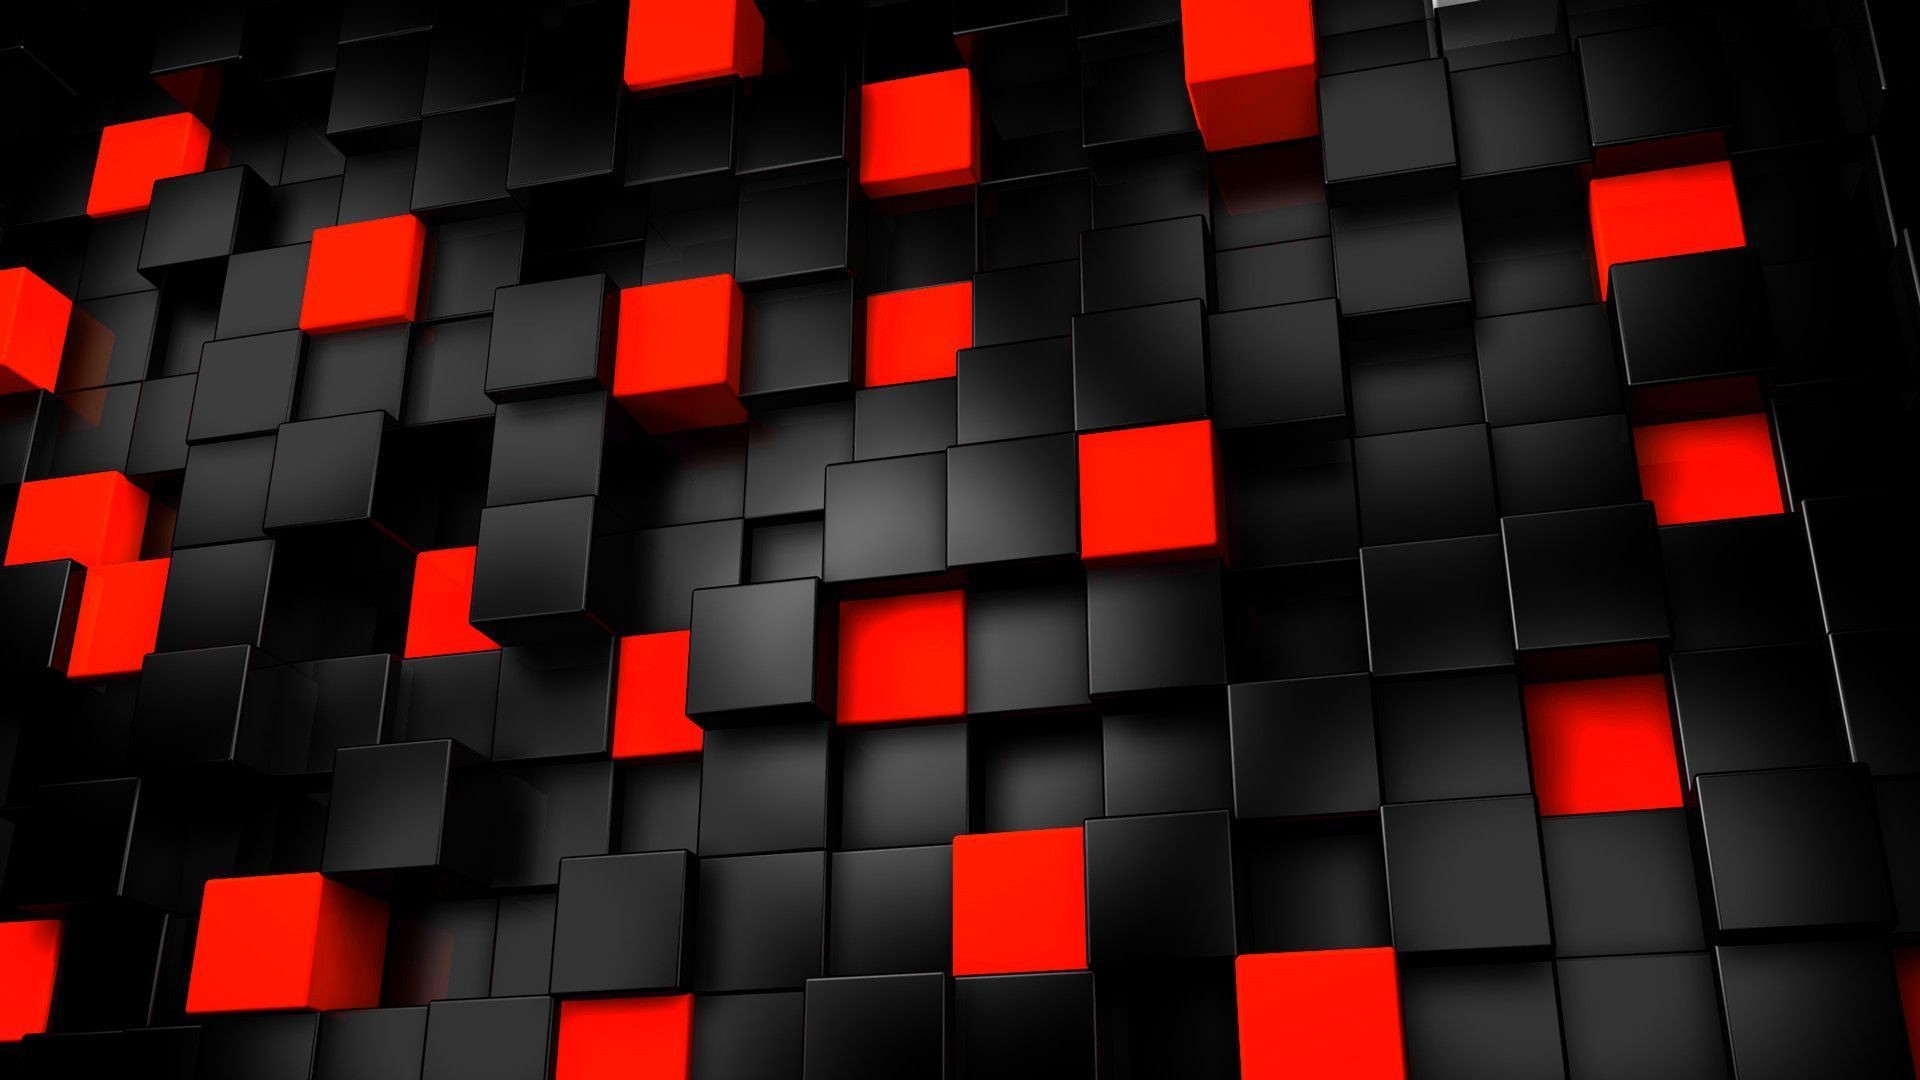 Black and Red Abstract Wallpapers 1284 – HD Wallpaper Site